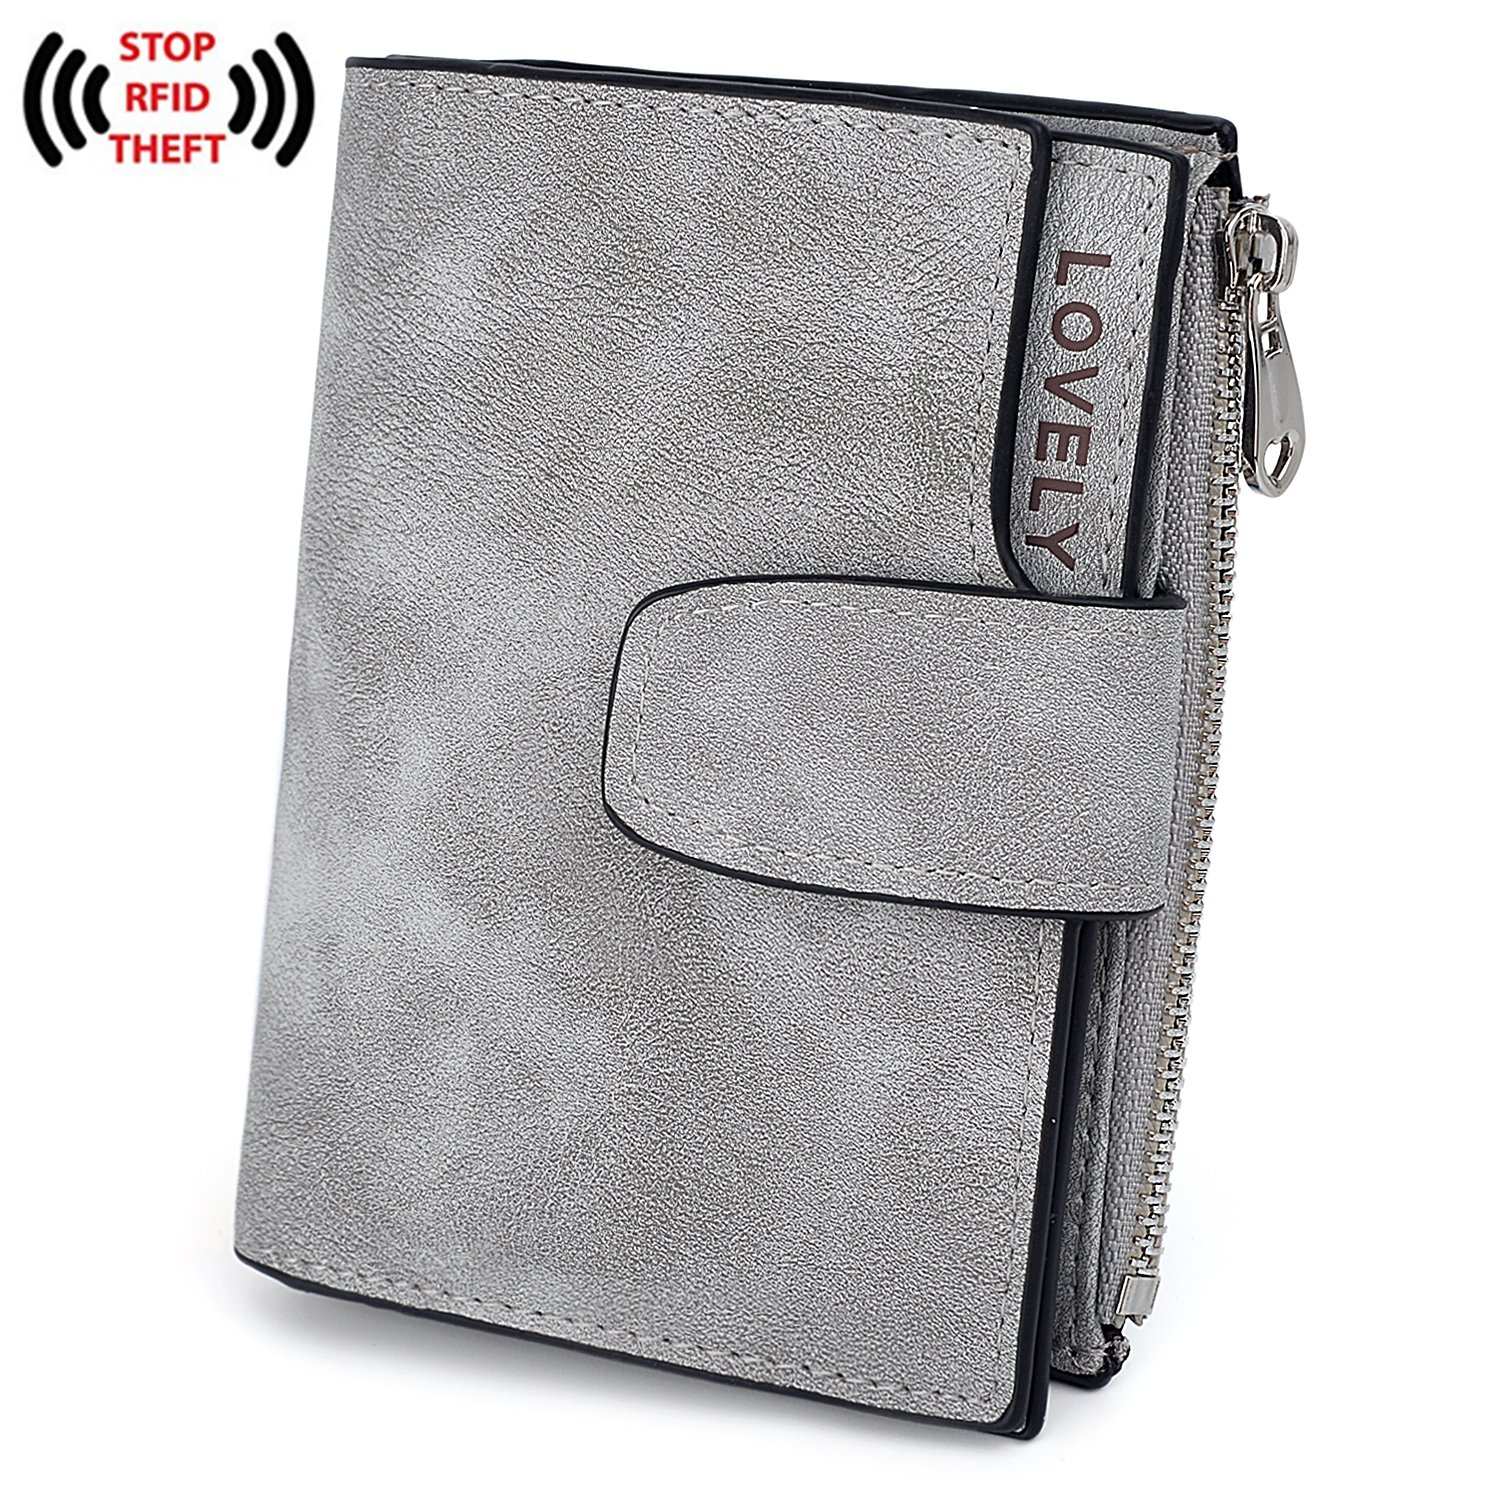 UTO RFID Wallet for Women PU Matte Leather Blocking Tech Wallet Card Holder Organizer Girls Small Cute Coin Purse with Snap Closure C Grey